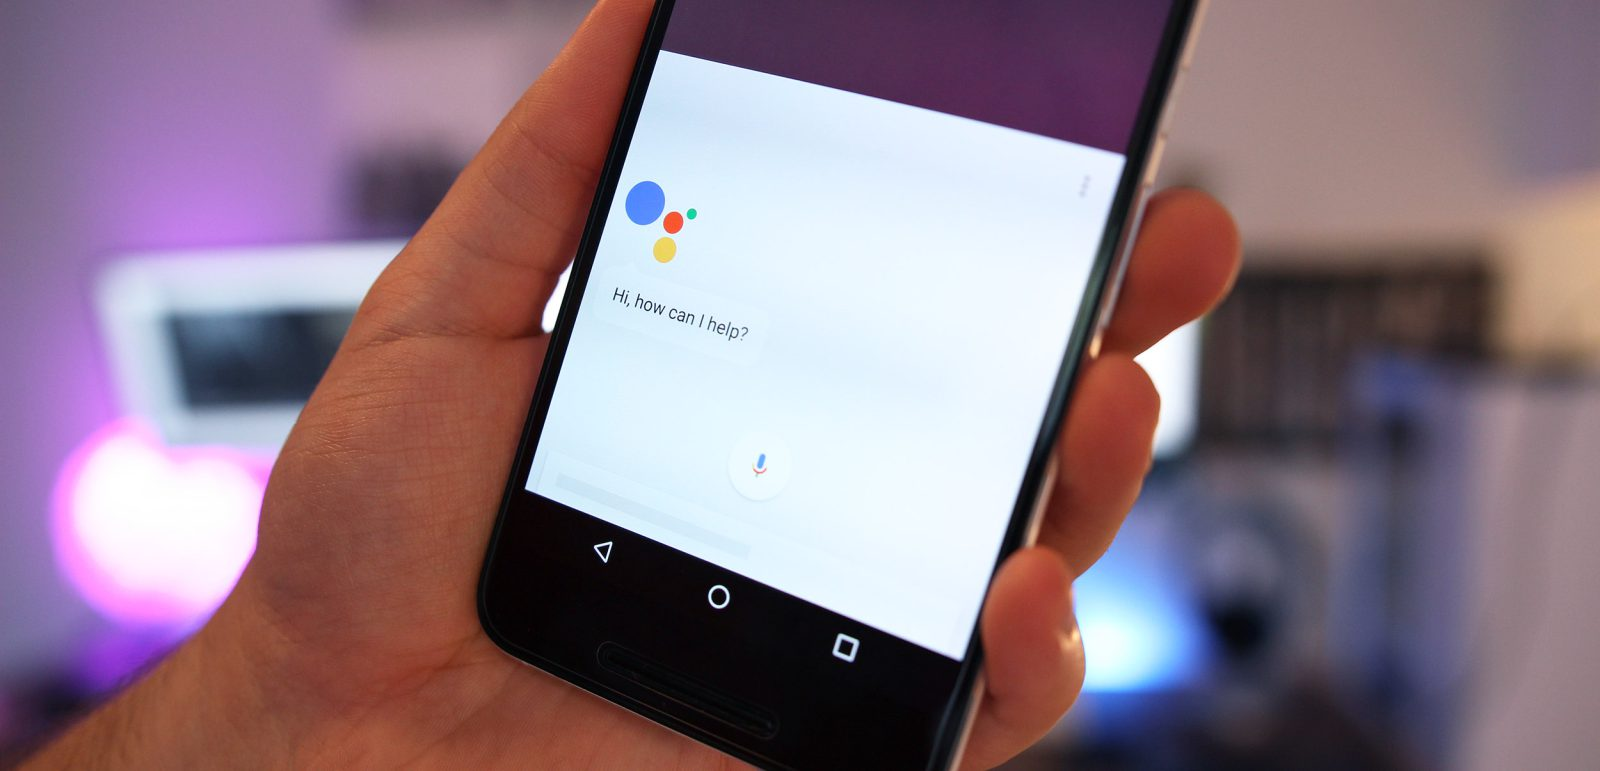 Google getting ready Assistant Continued Conversation for phones